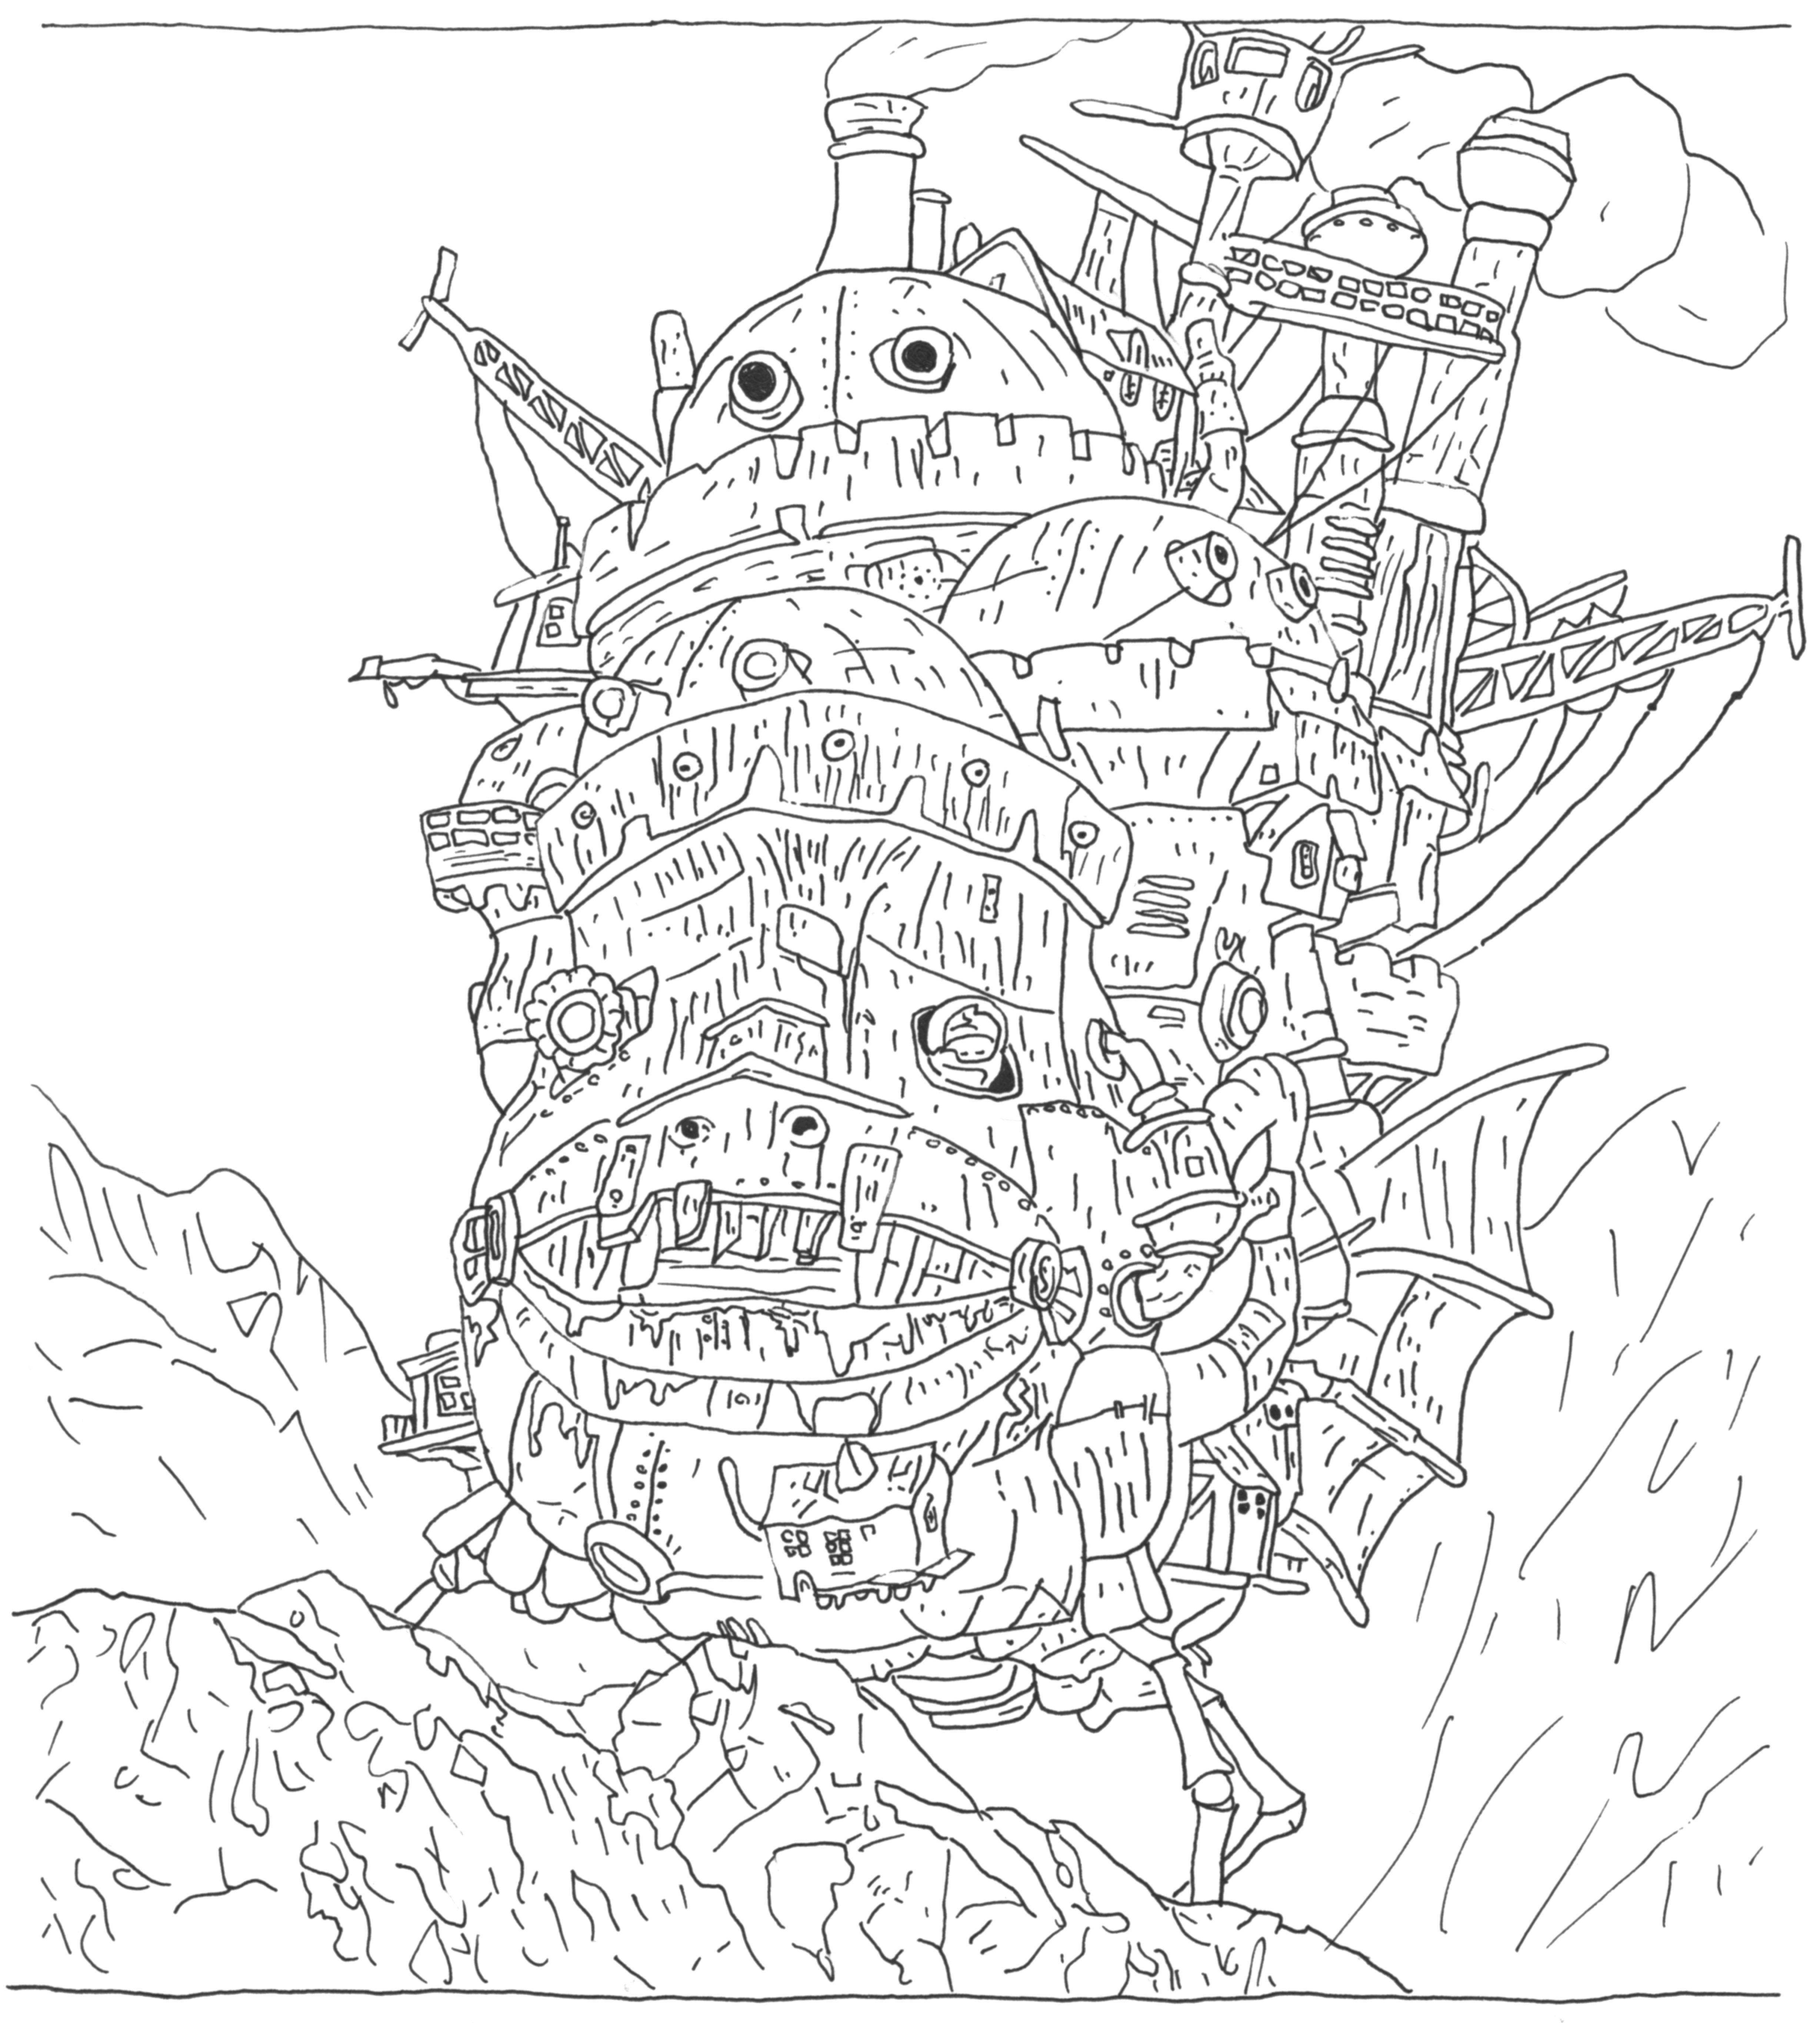 Drawing 58 - Howl's Moving Castle by MrAreay on DeviantArt